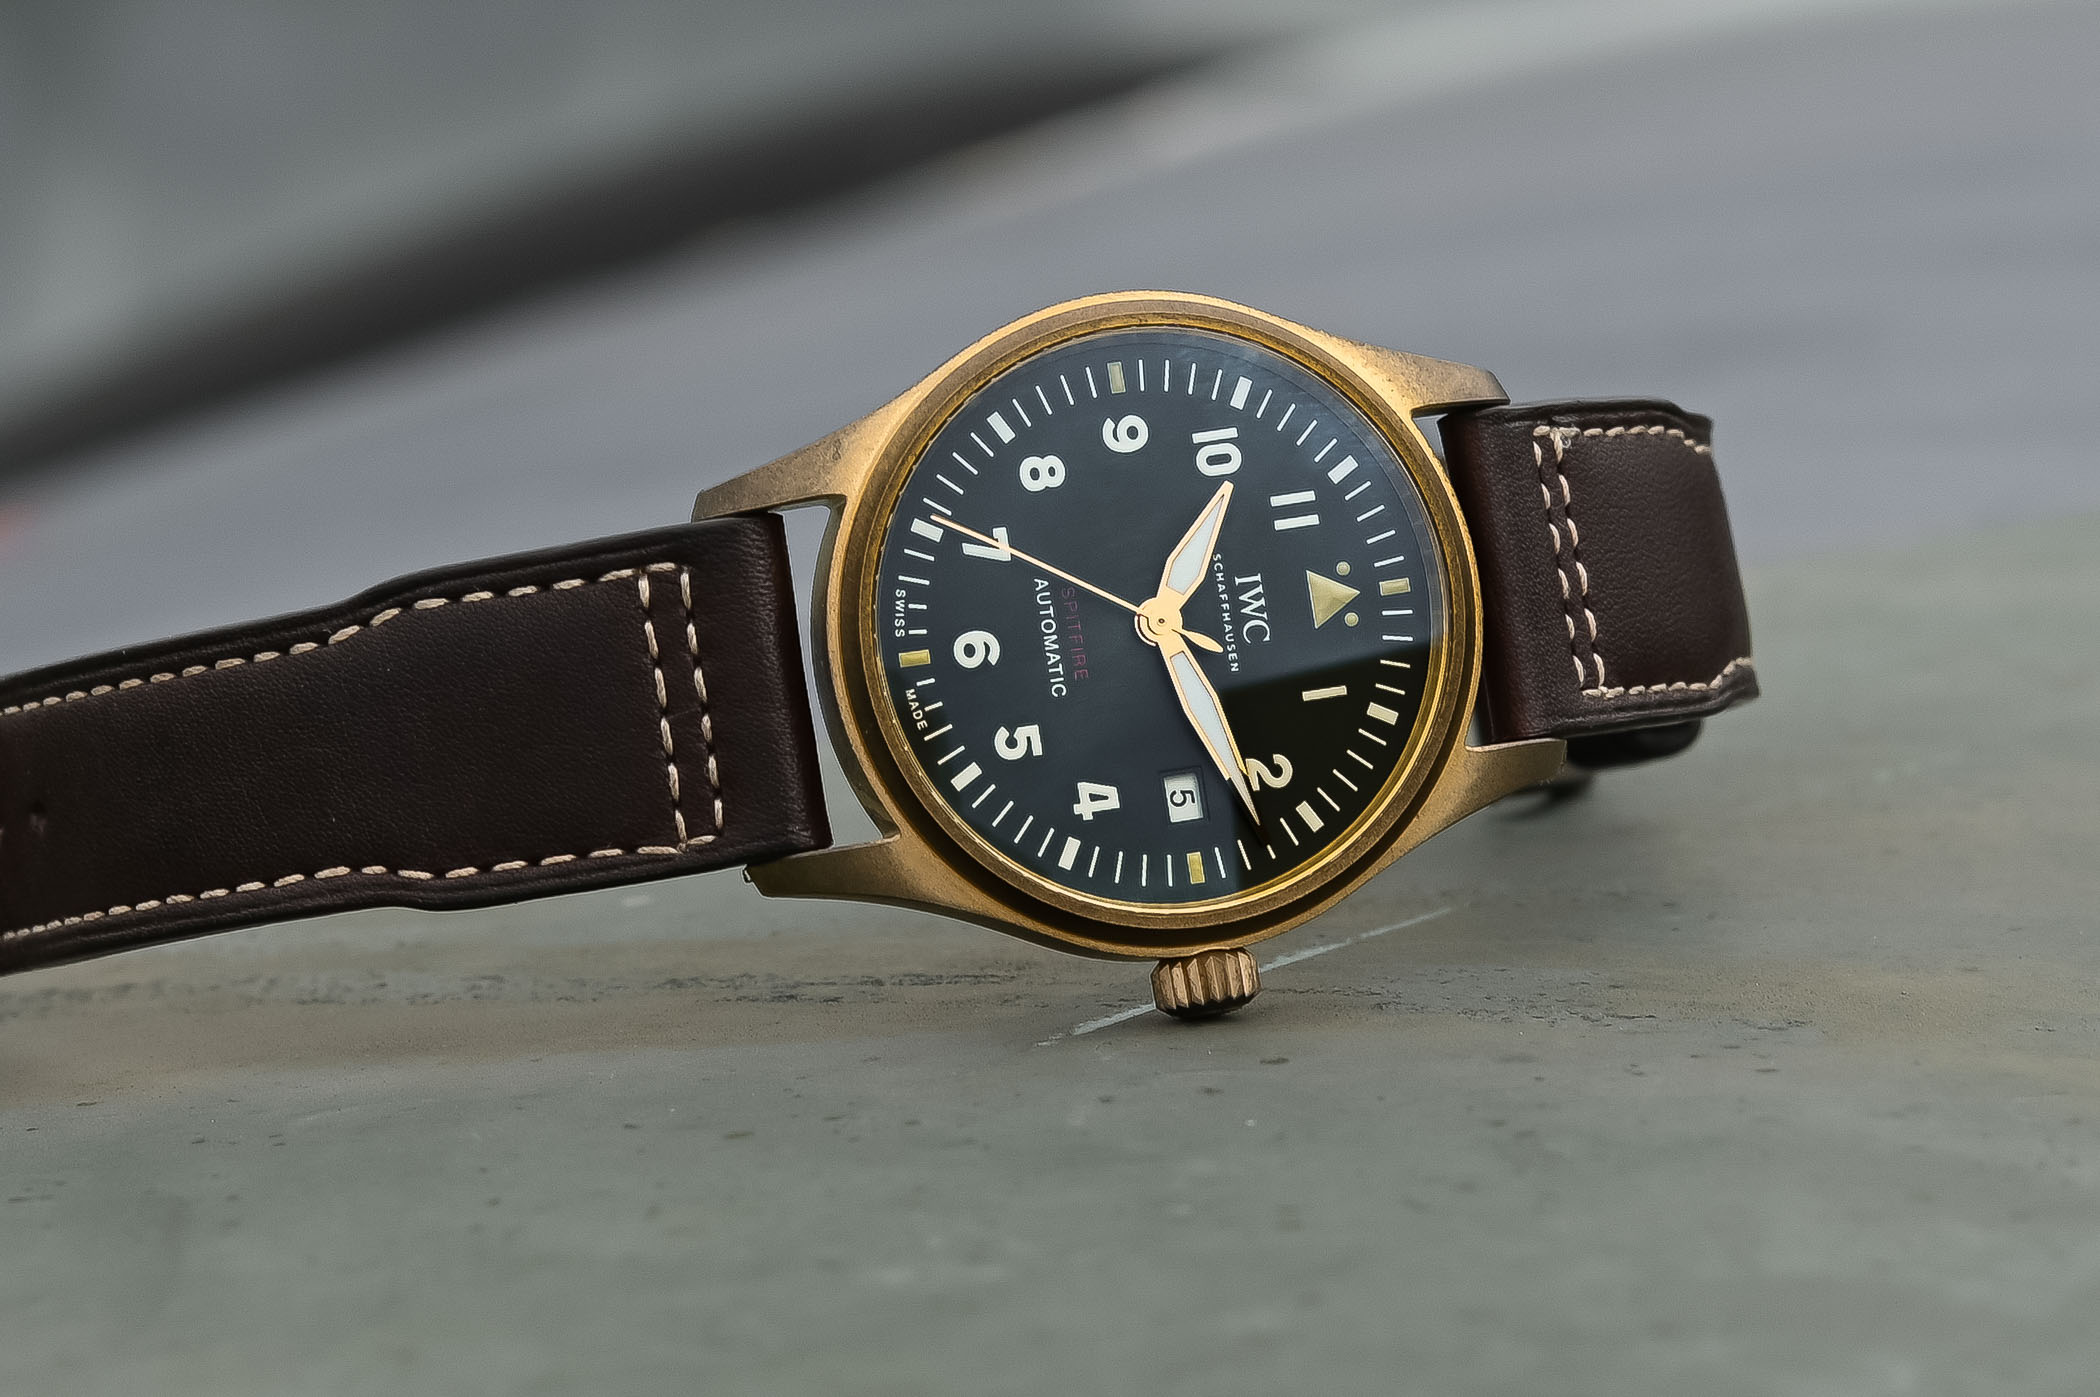 d7aae371008 SIHH 2019 IWC Pilot s Watch Automatic Spitfire Steel or Bronze – Smaller  and with In-House Movements